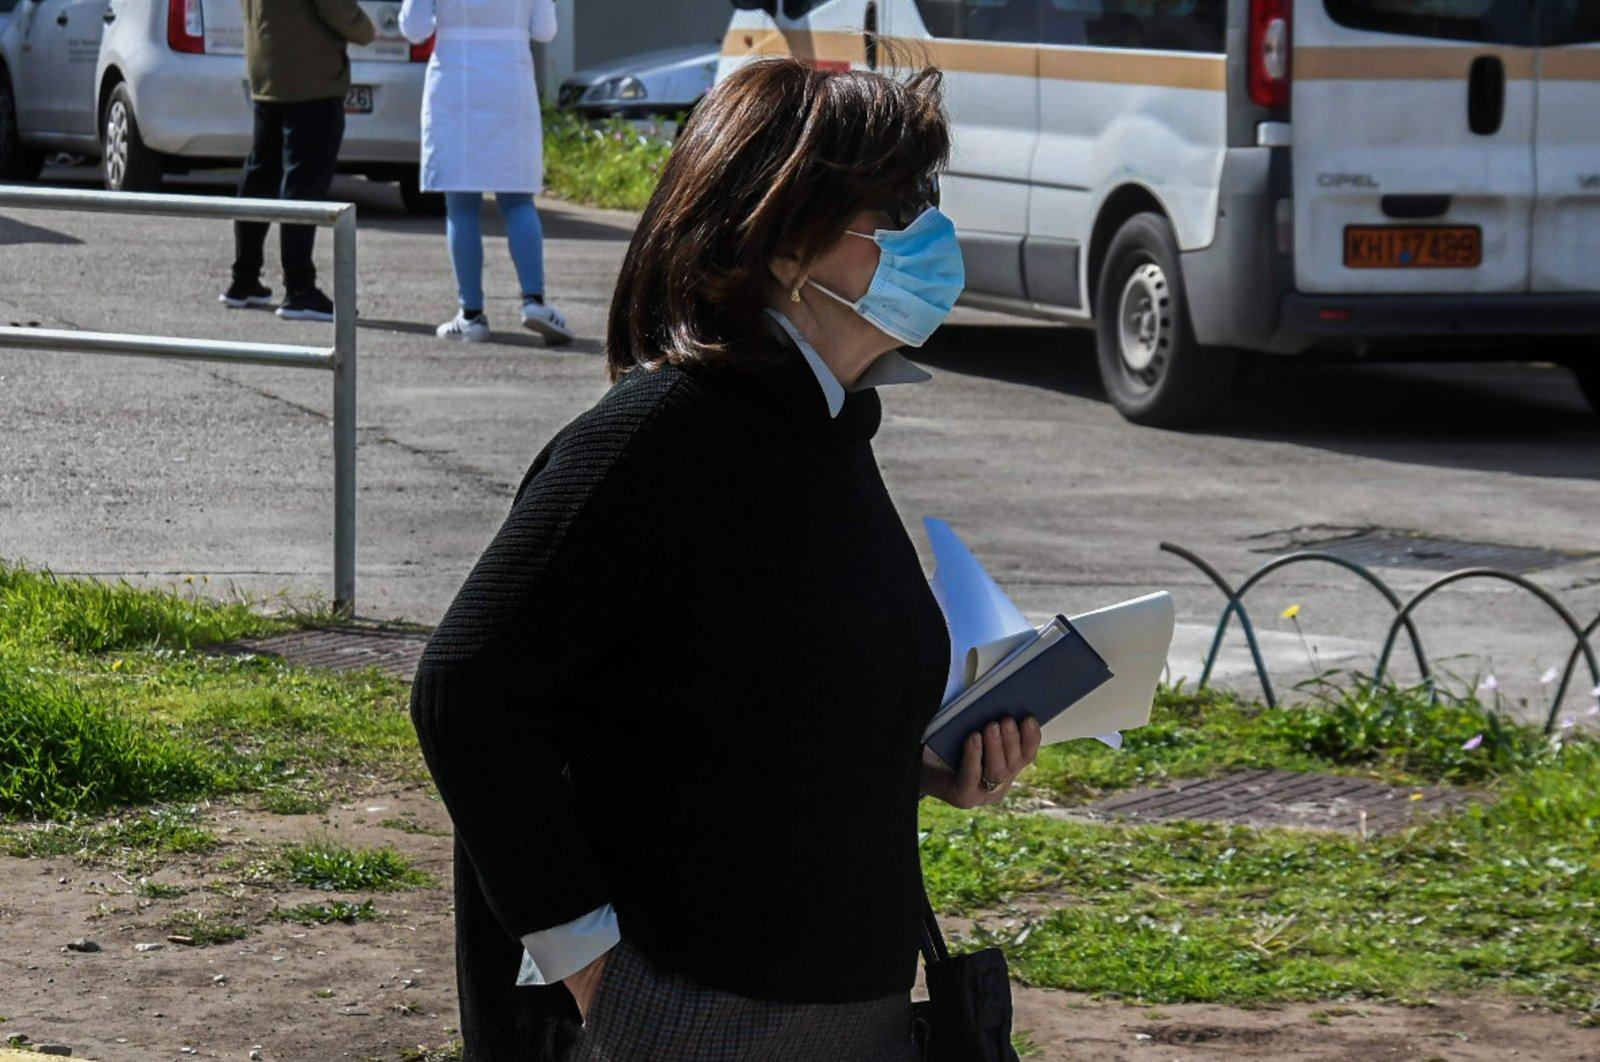 A woman wearing a protective face mask walks in front of the Patras University Hospital in Rio, outside Patras, southwestern Greece, where three patients infected with COVID-19, the new coronavirus, are hopitalised.